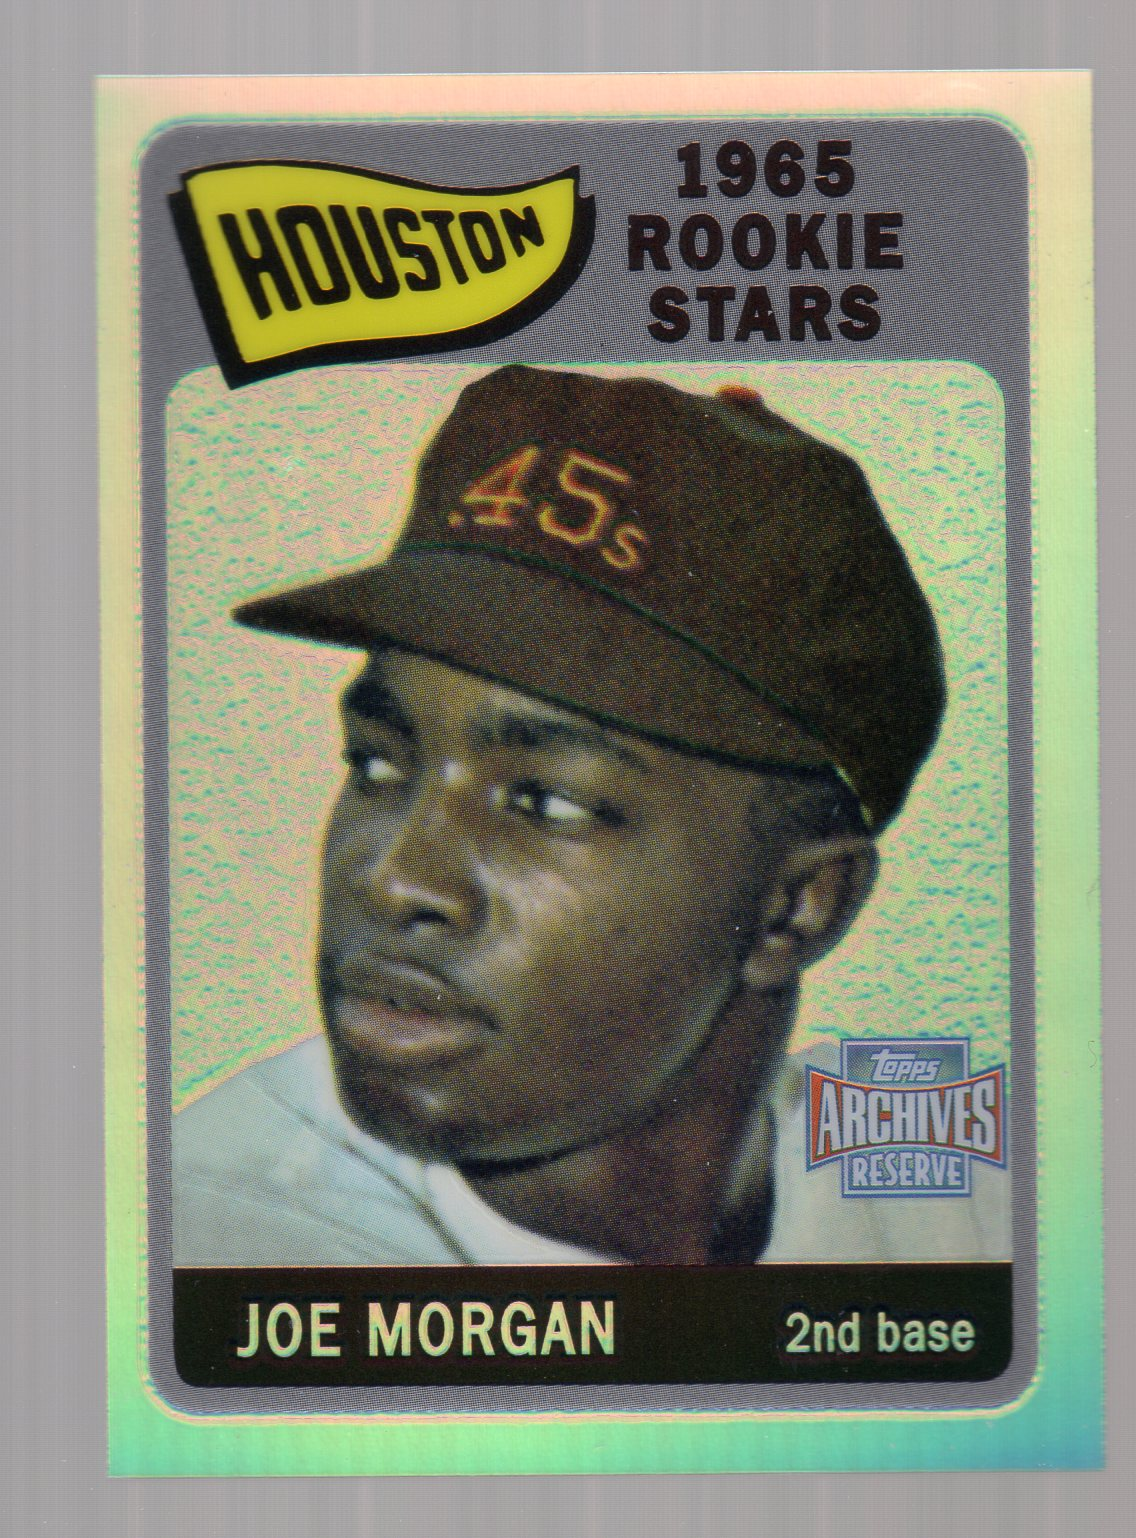 2001 Topps Archives Reserve #57 Joe Morgan 65